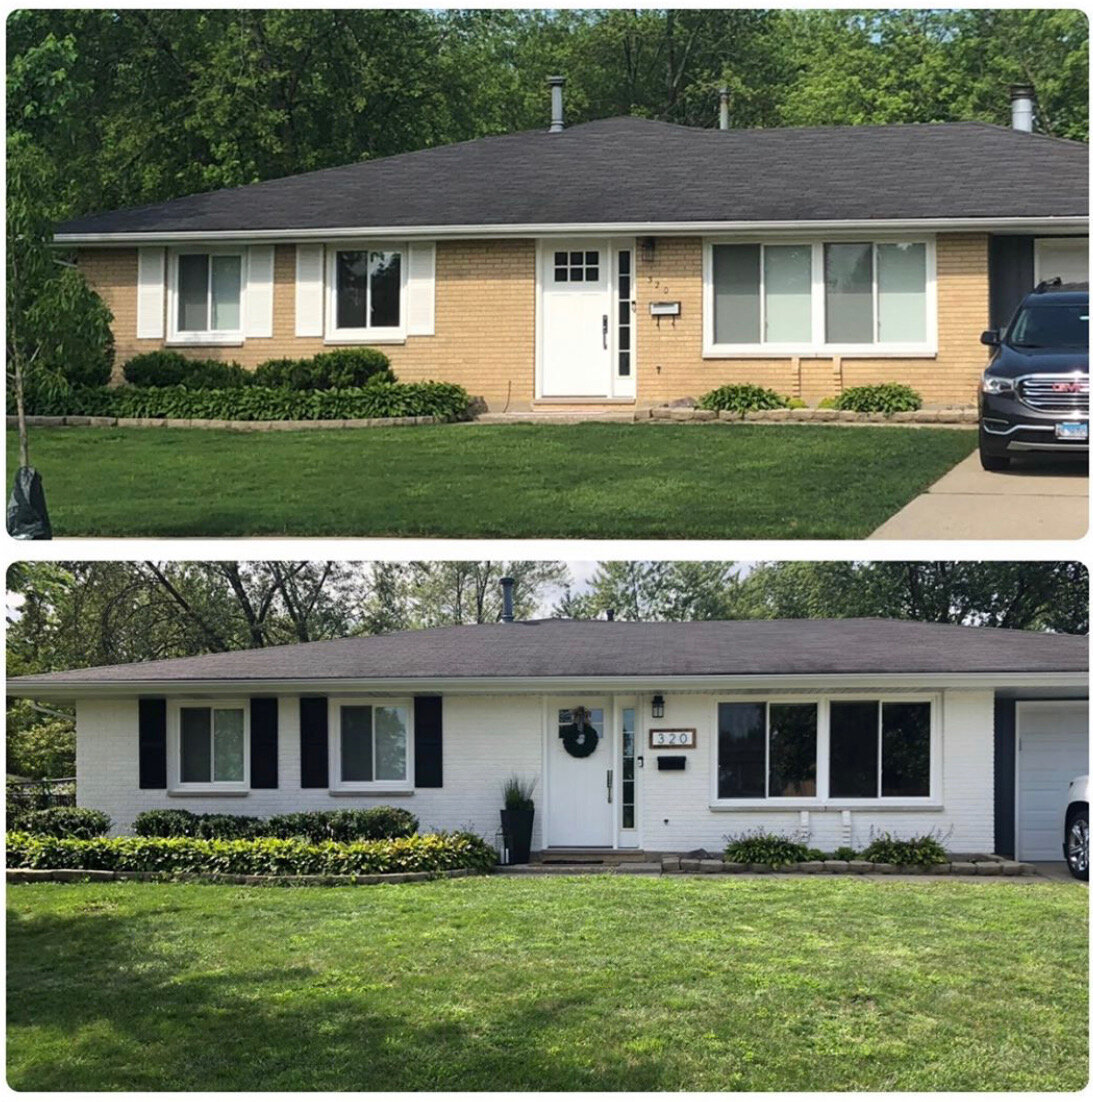 Home Exterior Romabio Before and After.jpeg